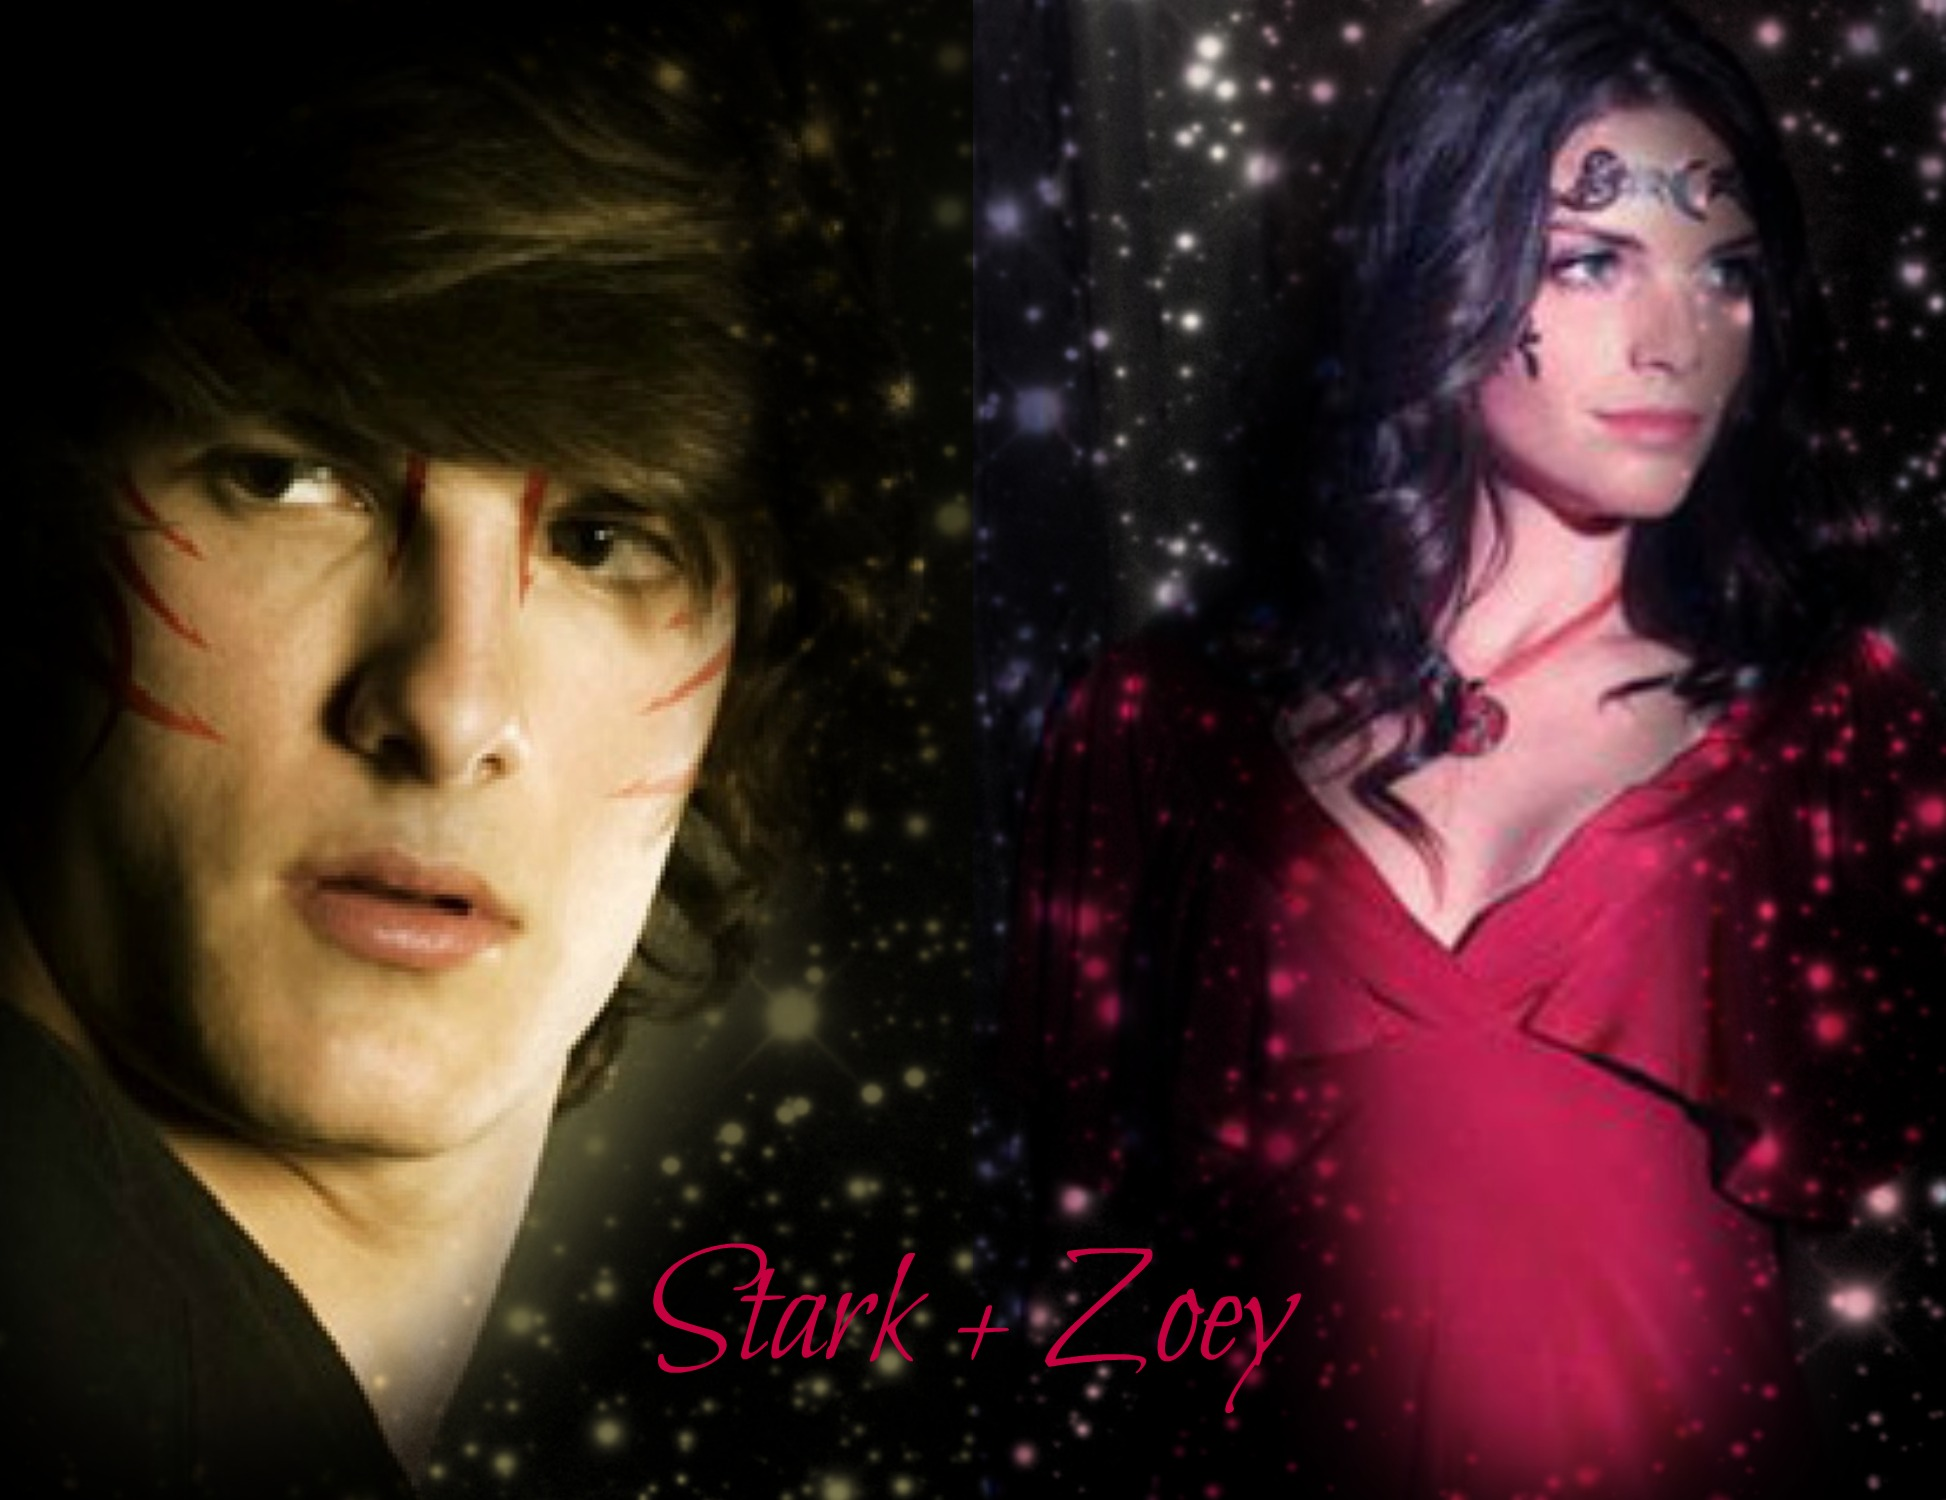 Stark zoey house of night series fan art 36049146 for Housse of night